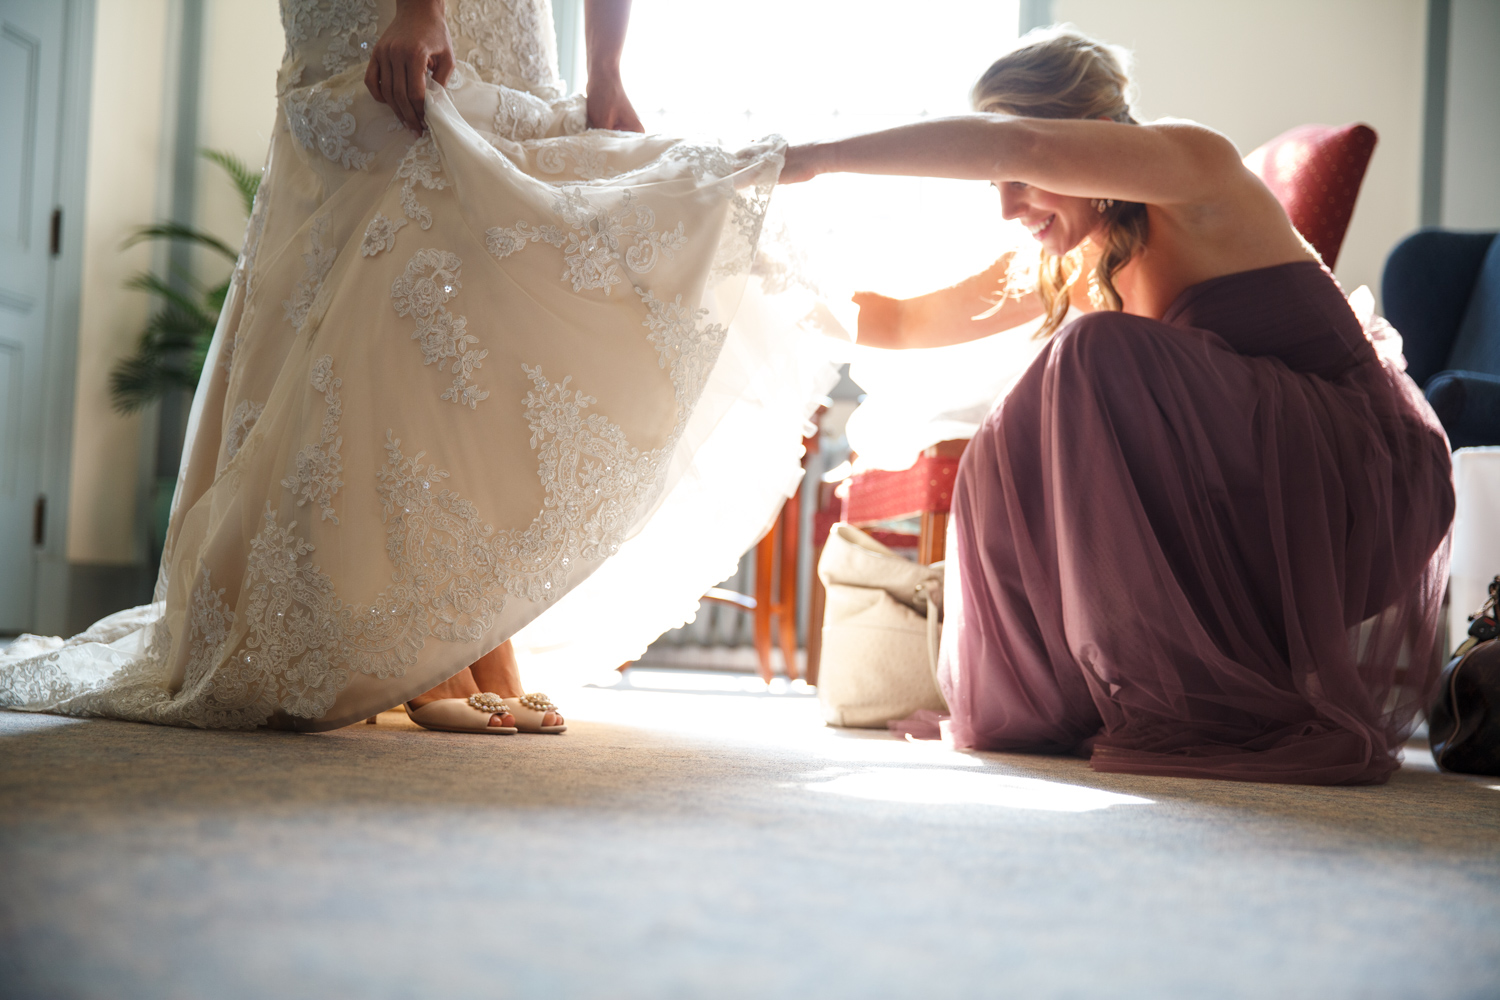 Sister helps bride with her shoes